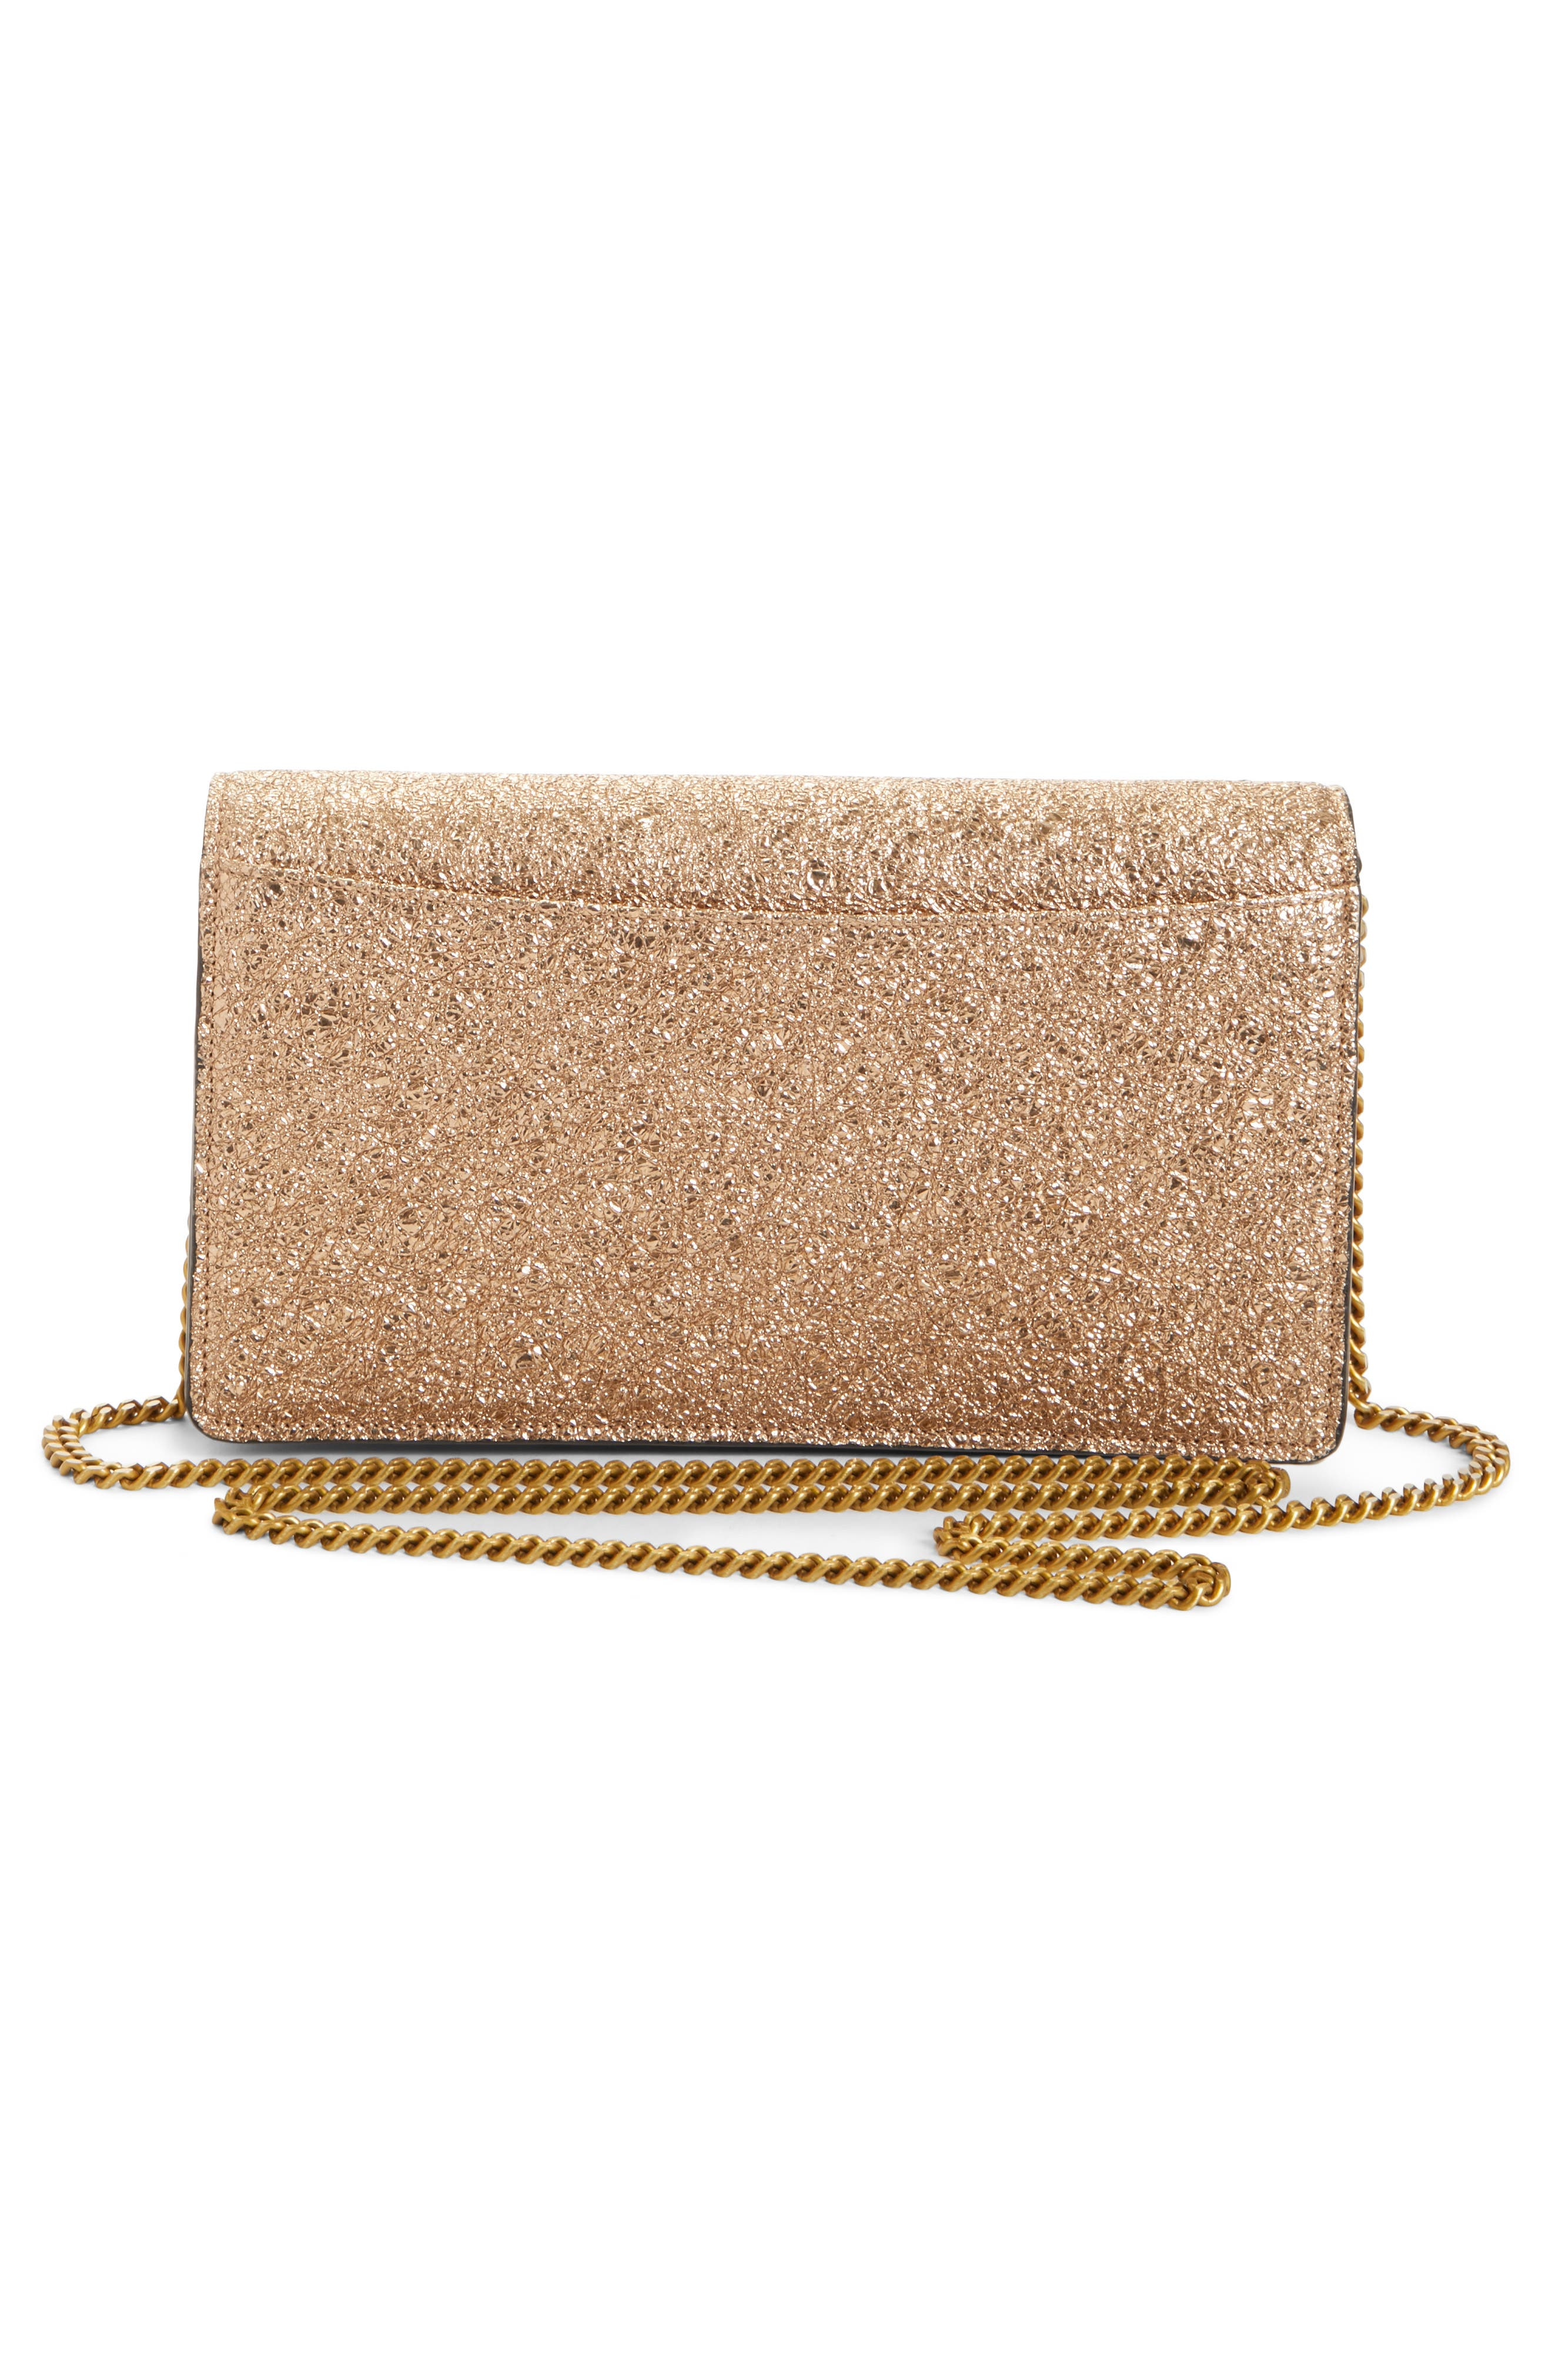 SEE BY CHLOÉ,                             Polina Metallic Leather Crossbody Clutch,                             Alternate thumbnail 4, color,                             220